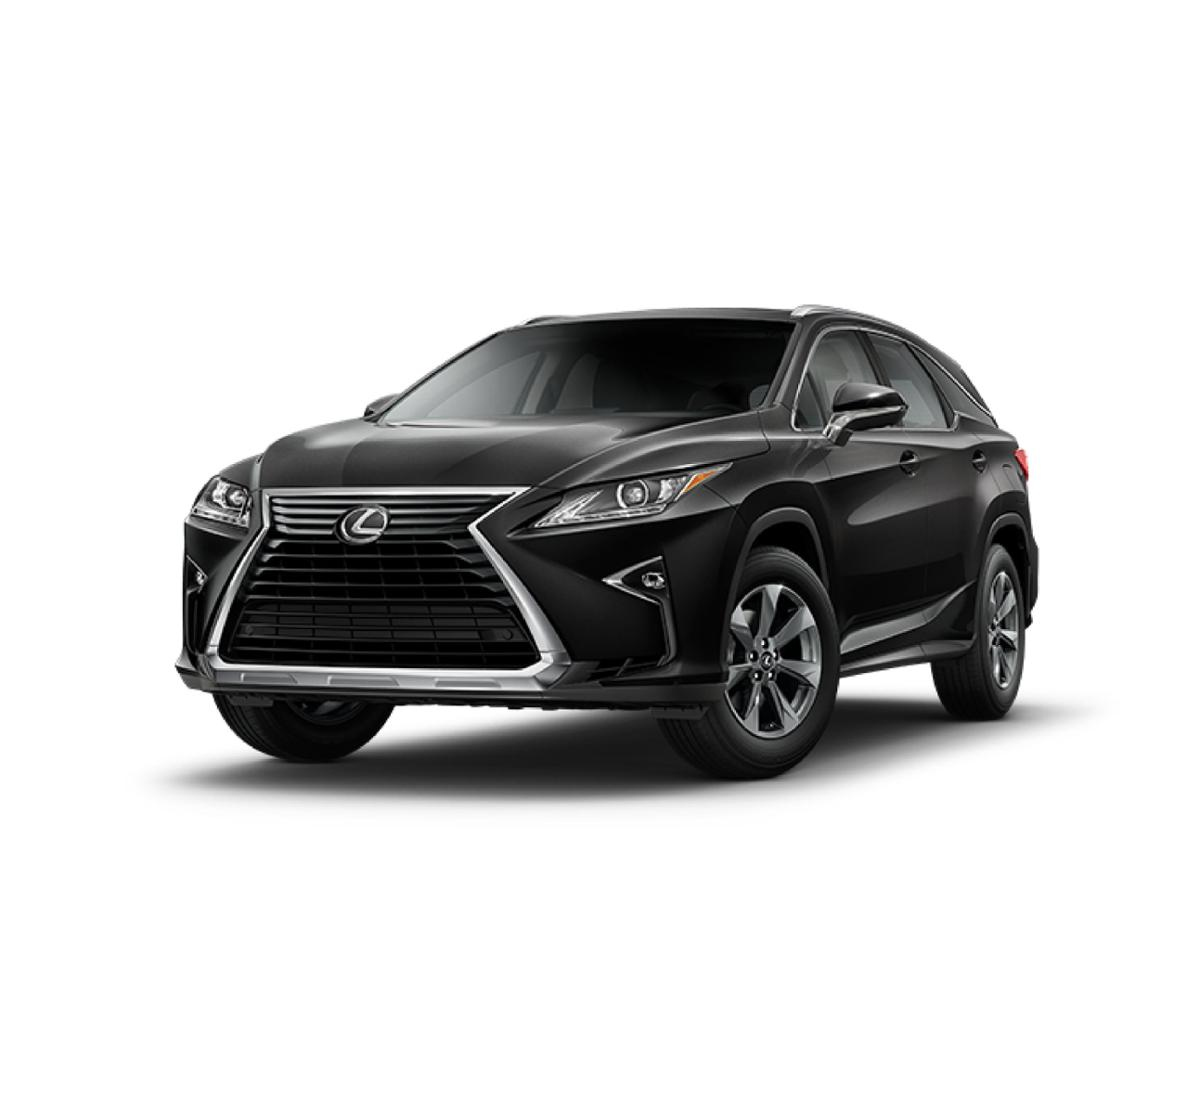 2019 Lexus RX 350L Vehicle Photo in Danvers, MA 01923